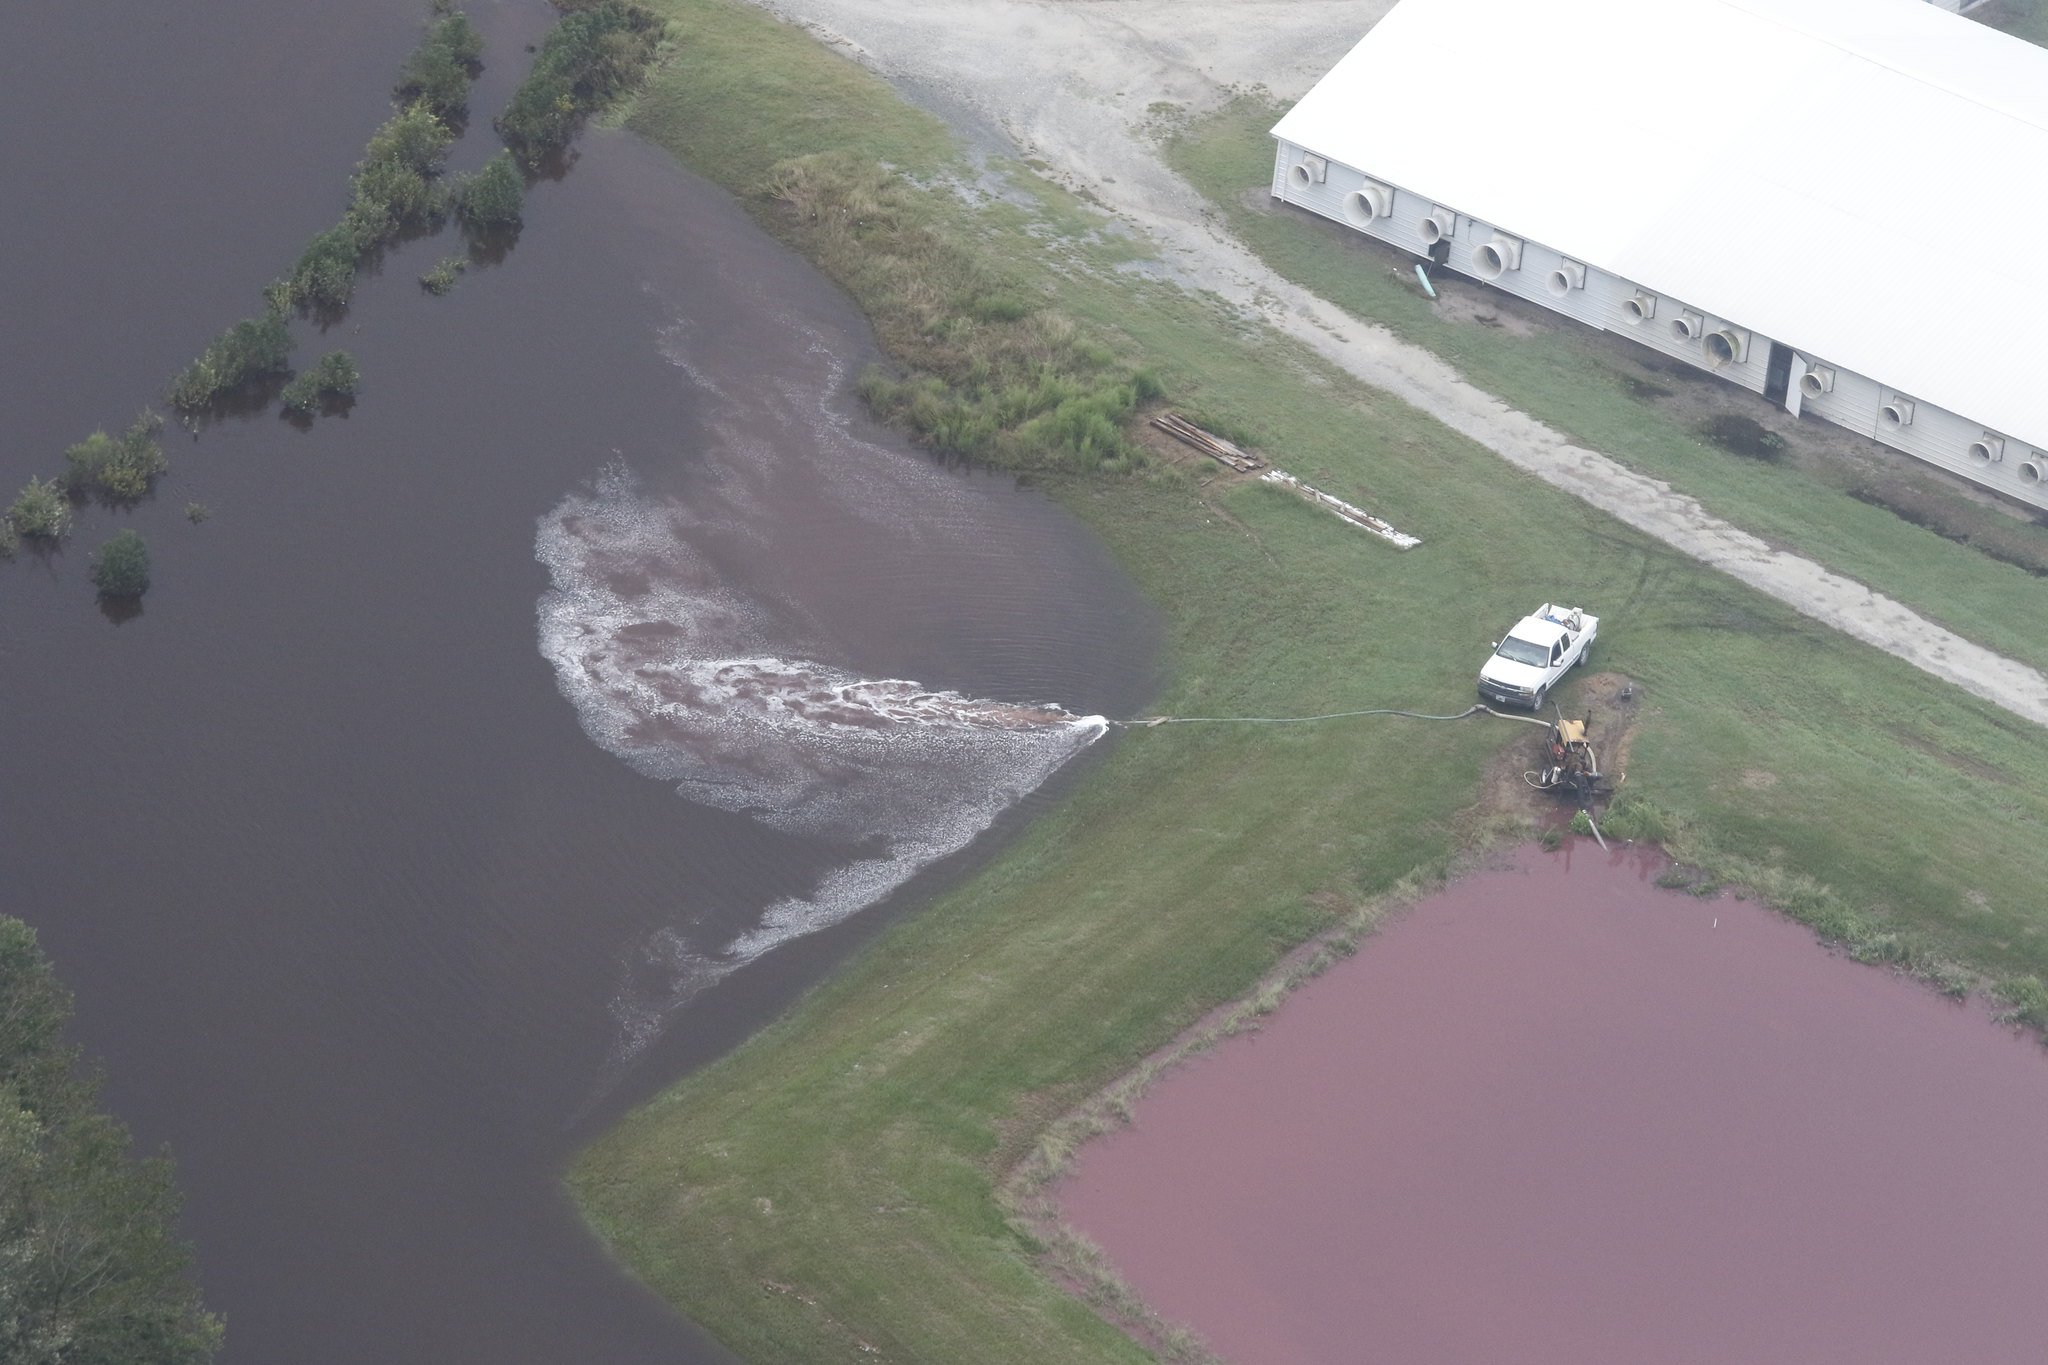 A North Carolina worker pumps hog waste into floodwaters after Hurricane Florence. Source: Creative Commons.